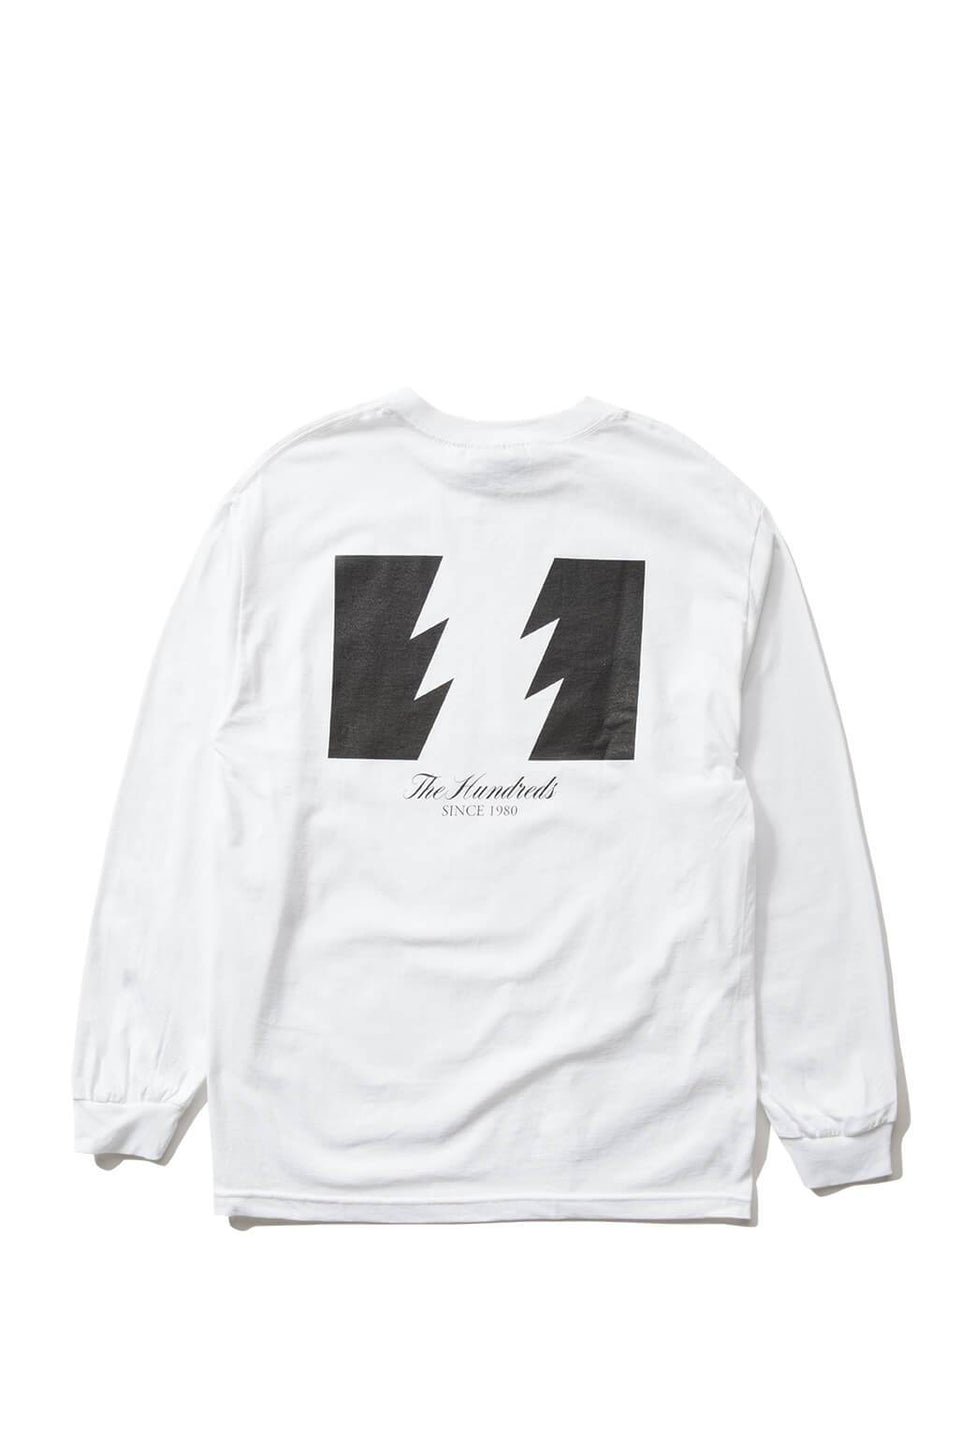 The Hundreds Forever Wildfire Longsleeve Shirt White Back